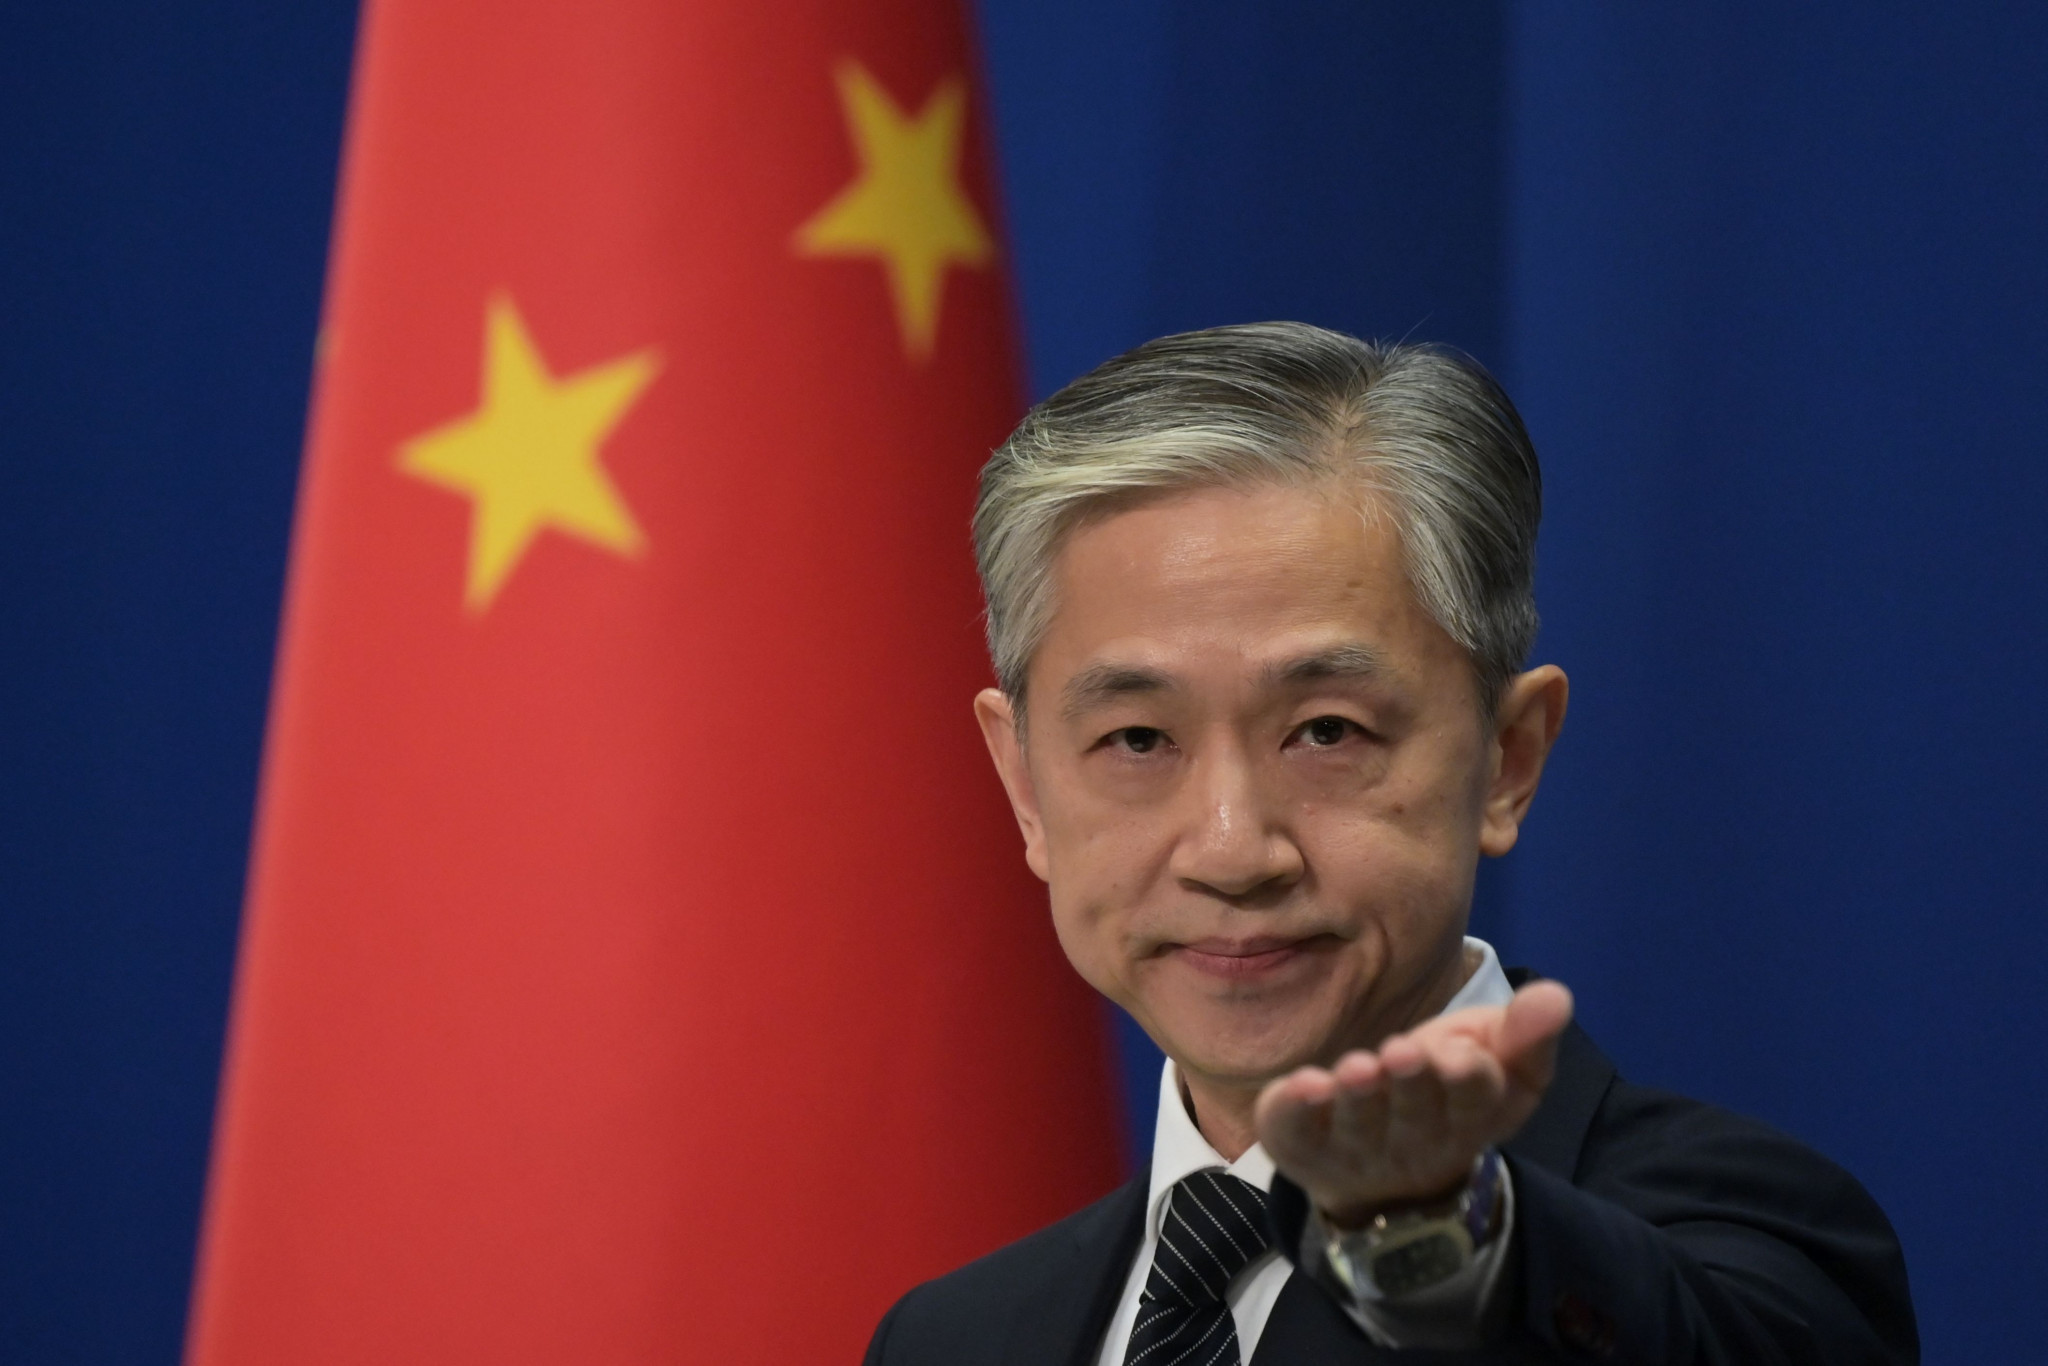 Chinese Foreign Ministry spokesperson Wang Wenbin has said genocide claims are a